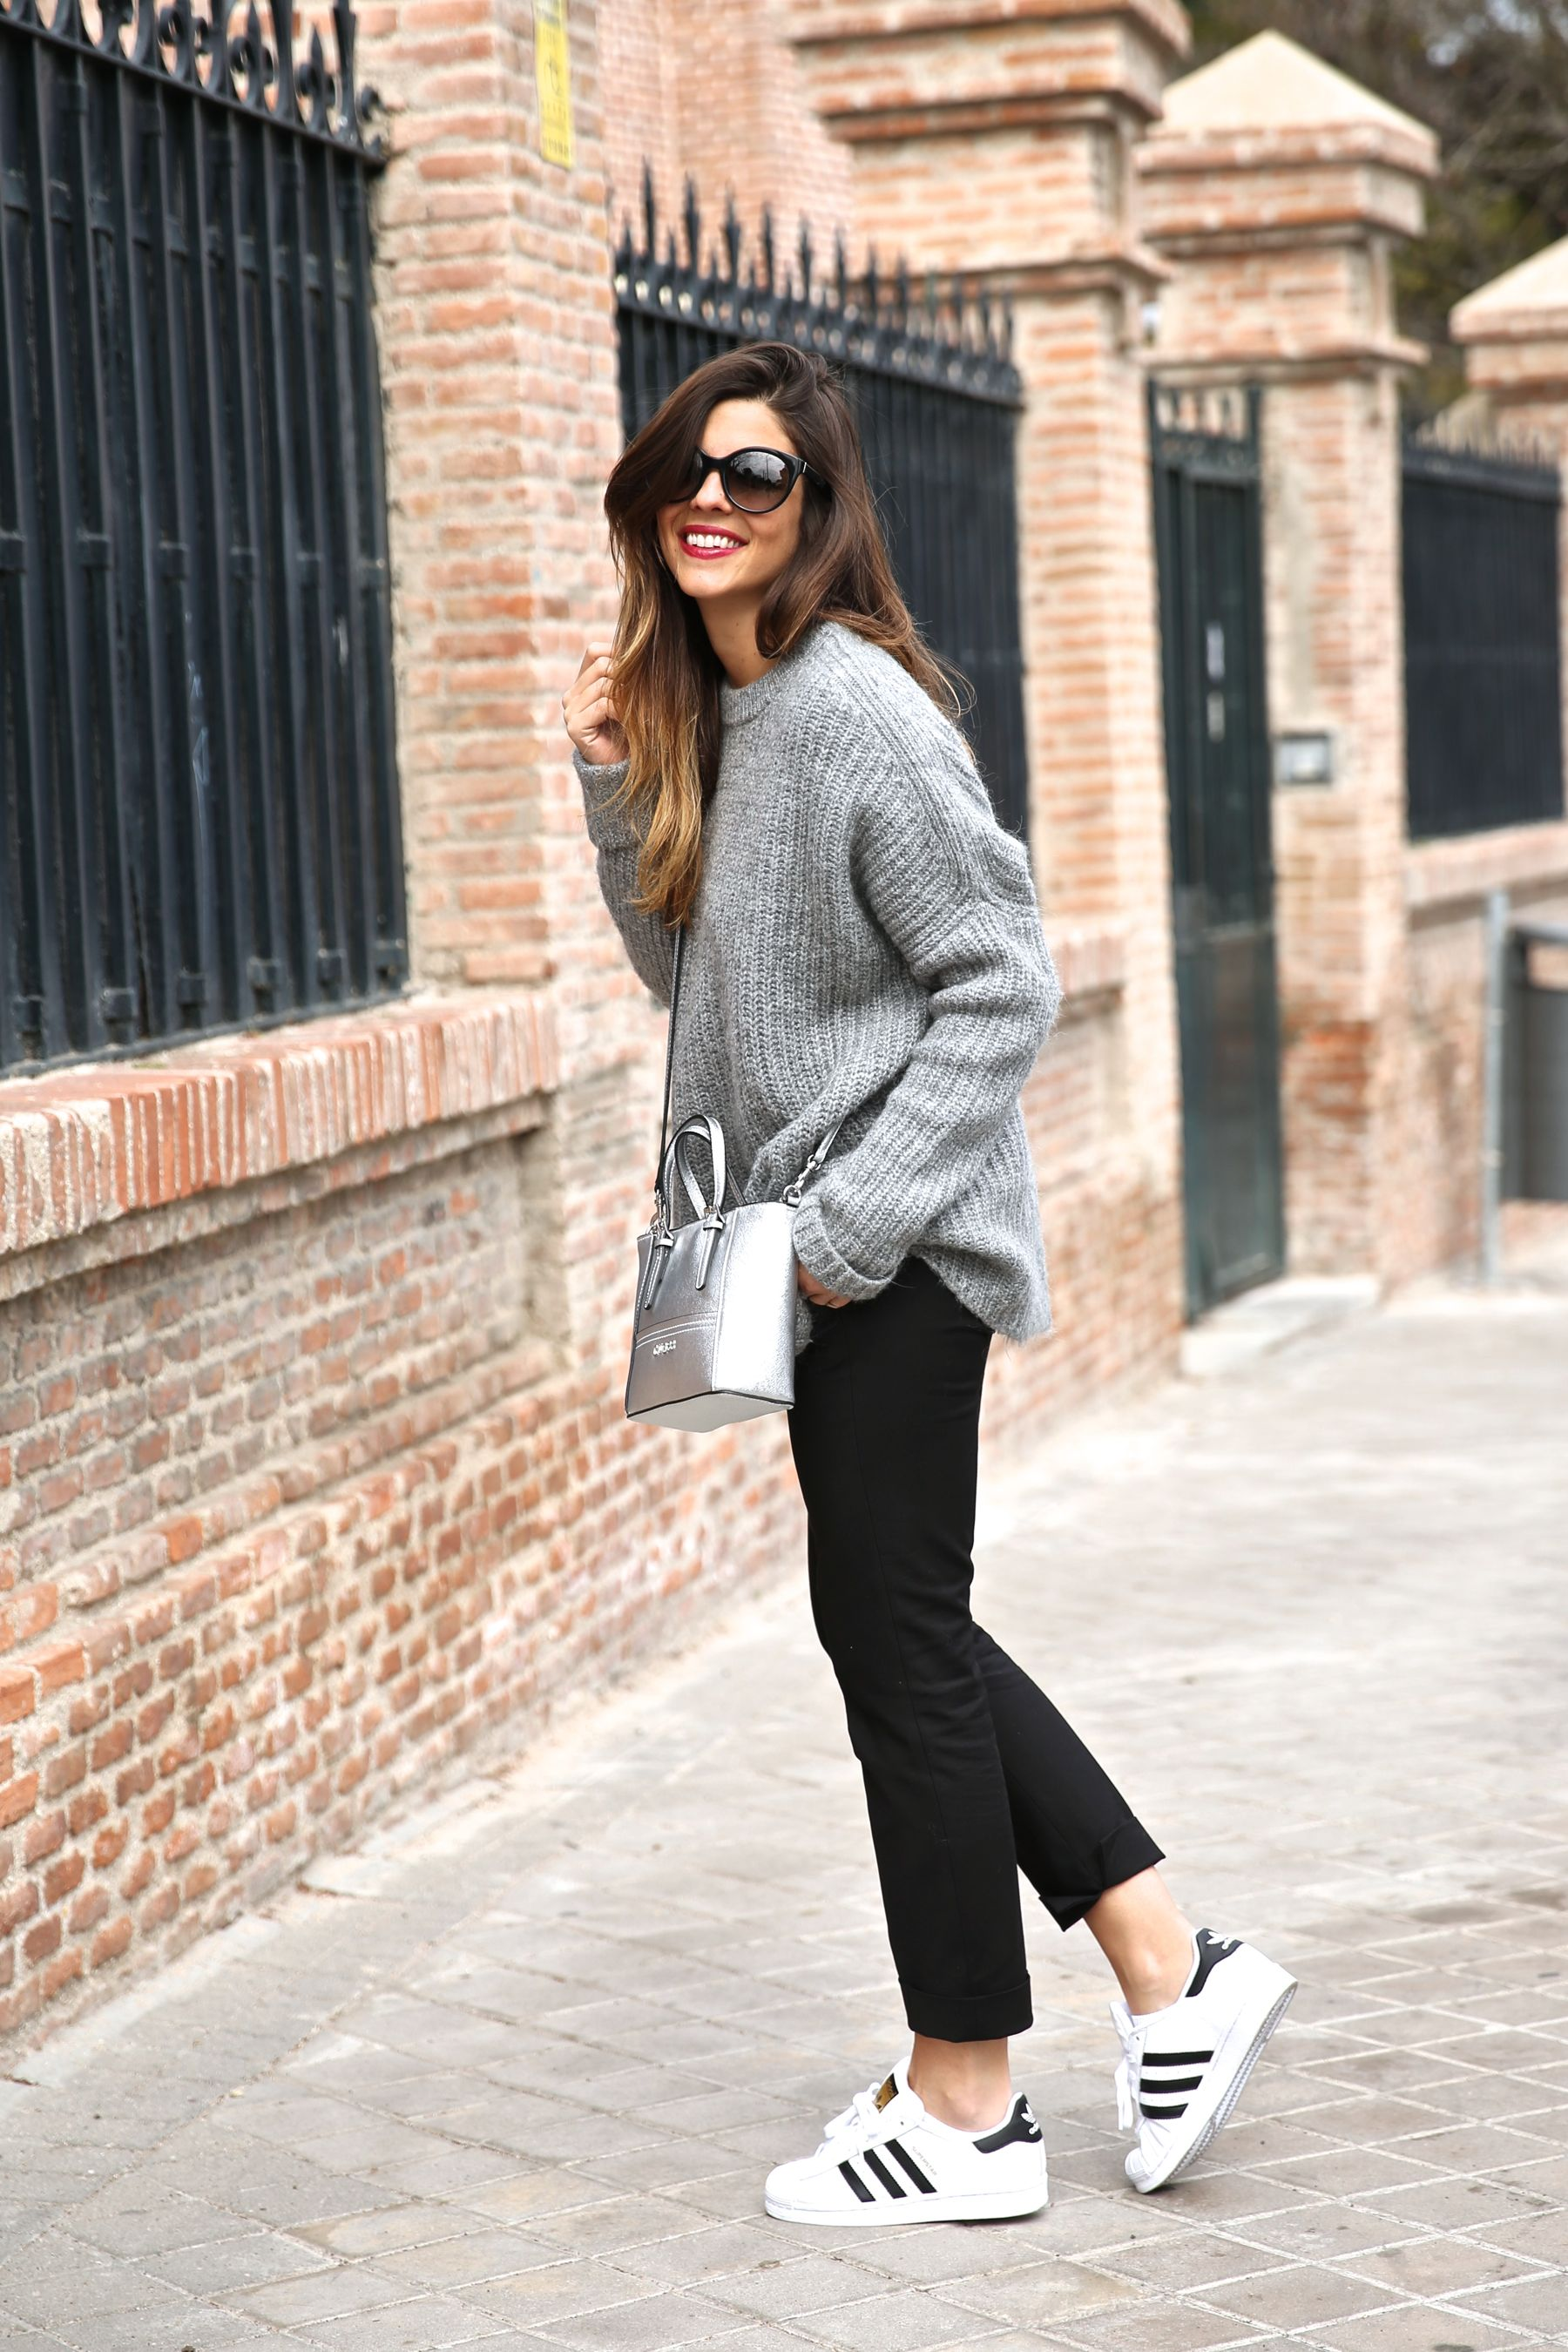 Natalia Cabezas is wearing a grey knit sweater and black trousers from Zara, sneakers from Adidas, sunglasses from Prada and the bag is from Guess